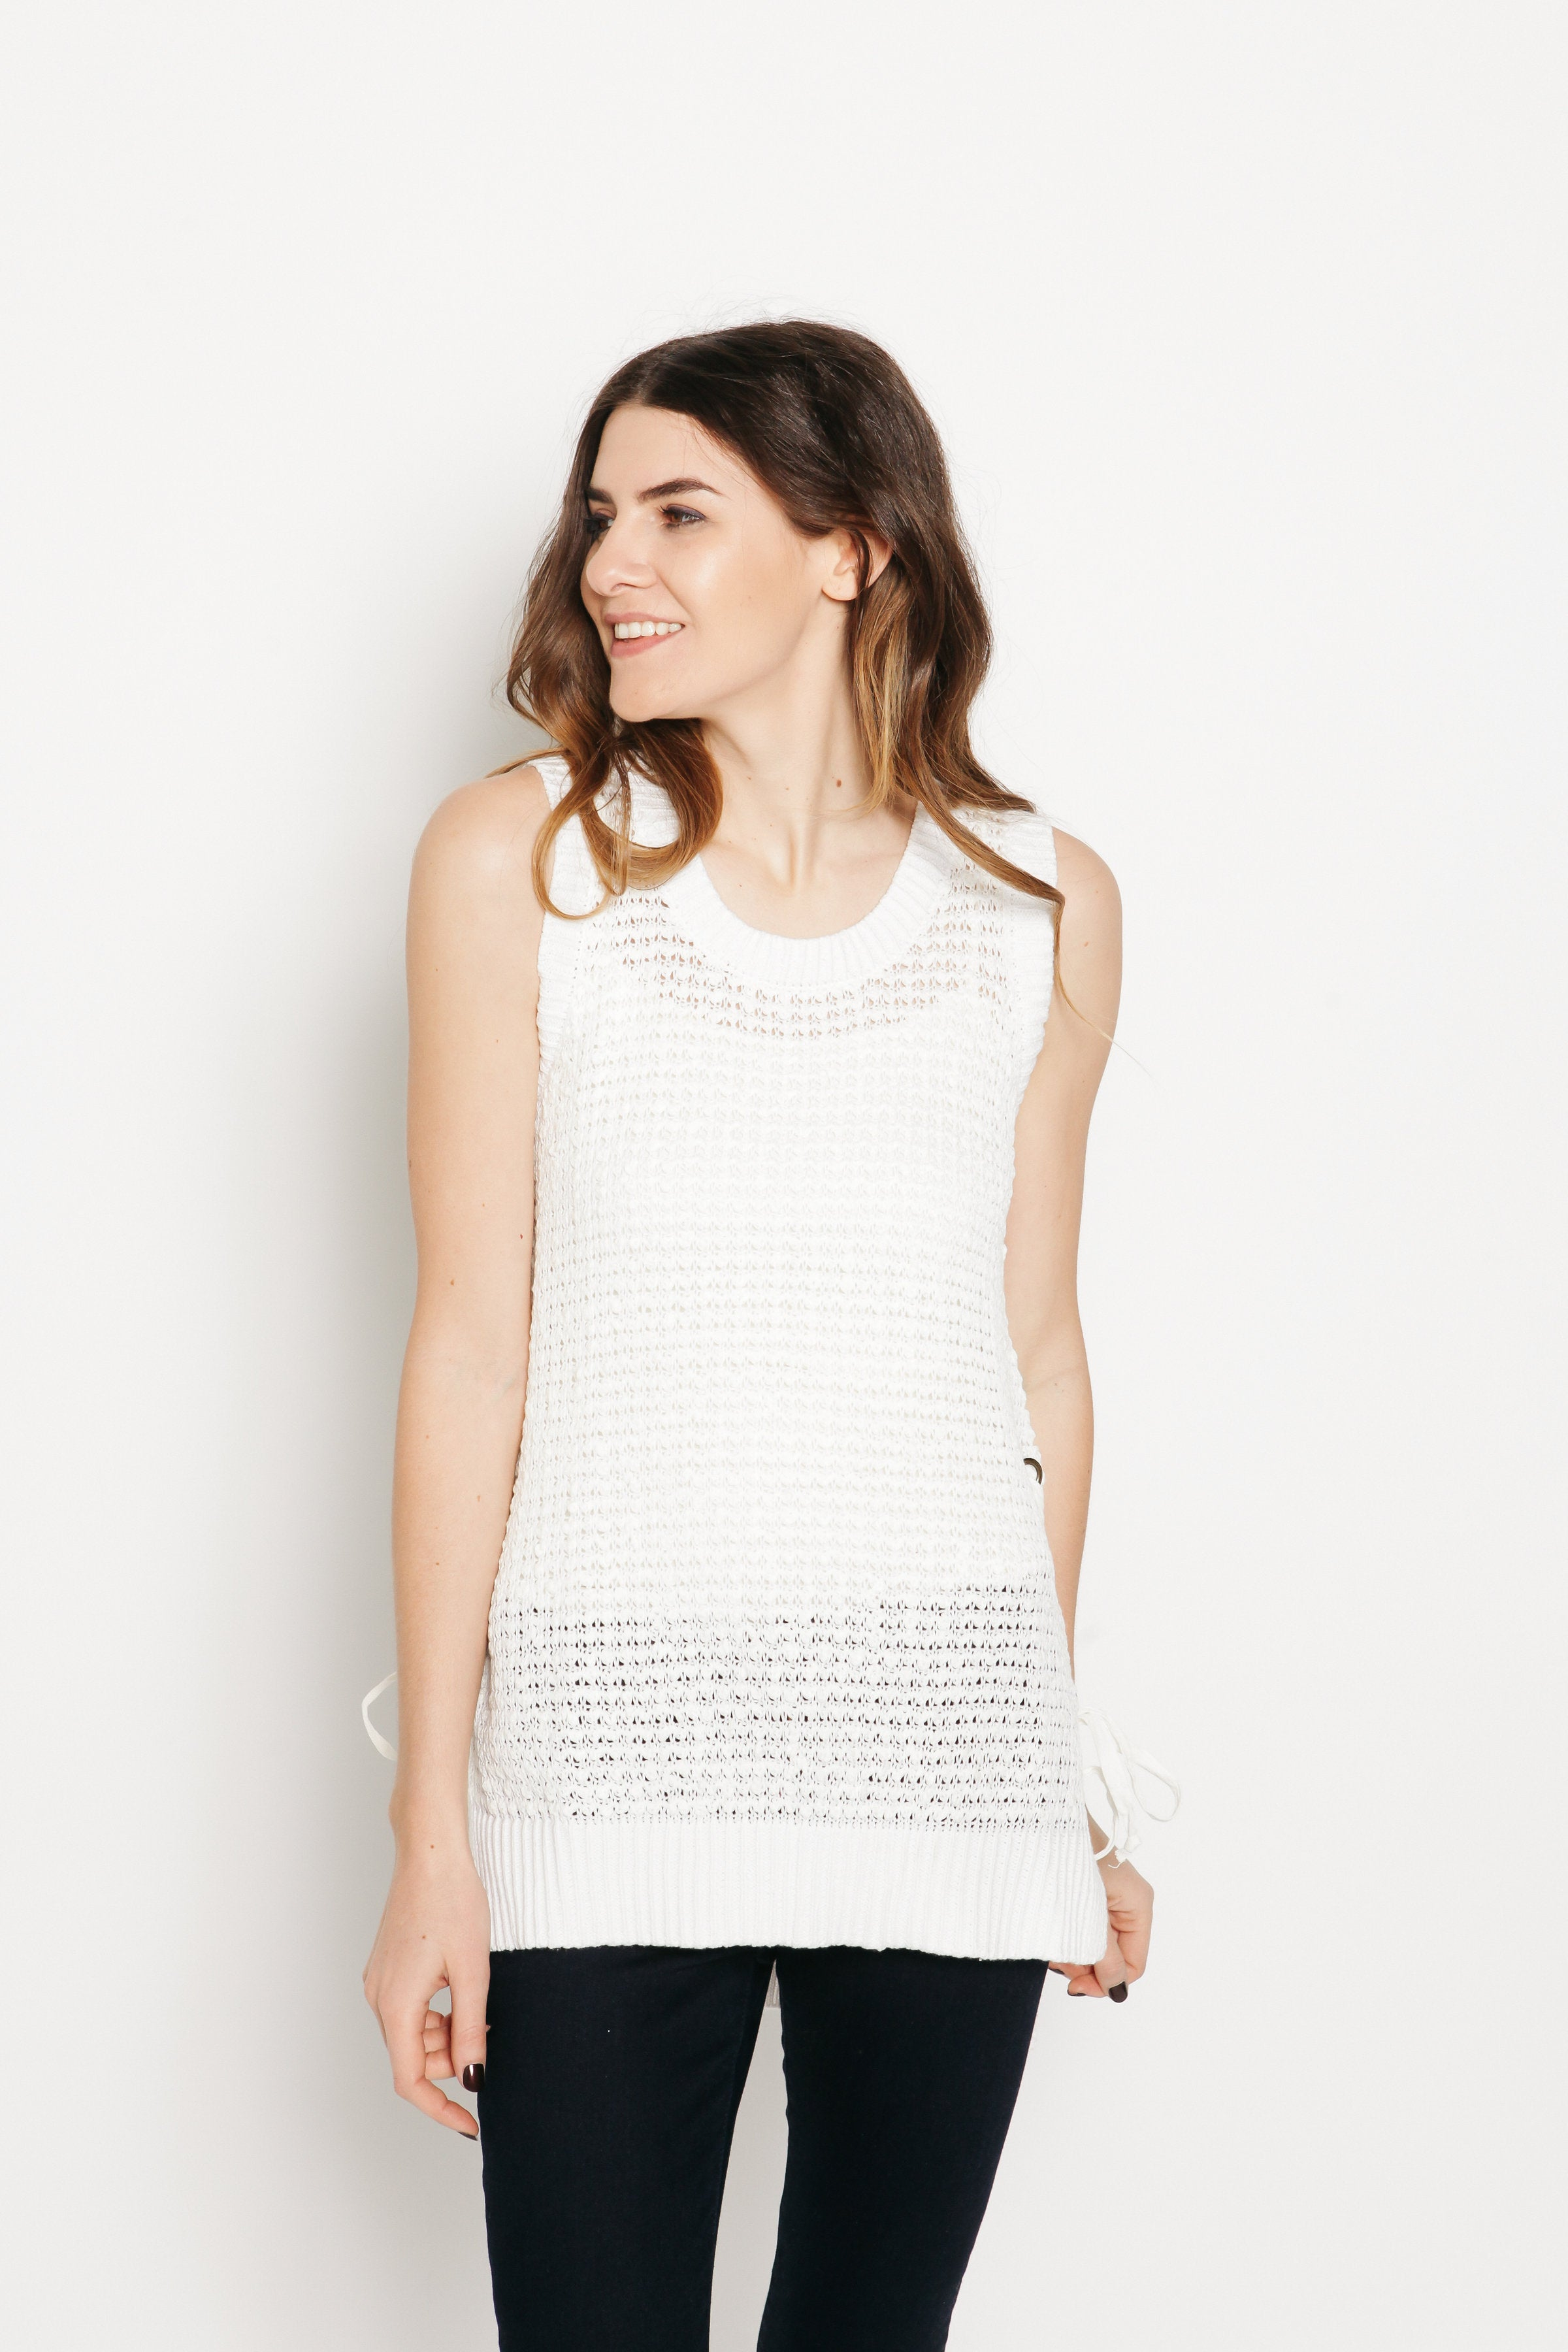 Autumn Knit Sleeveless Top - Off White